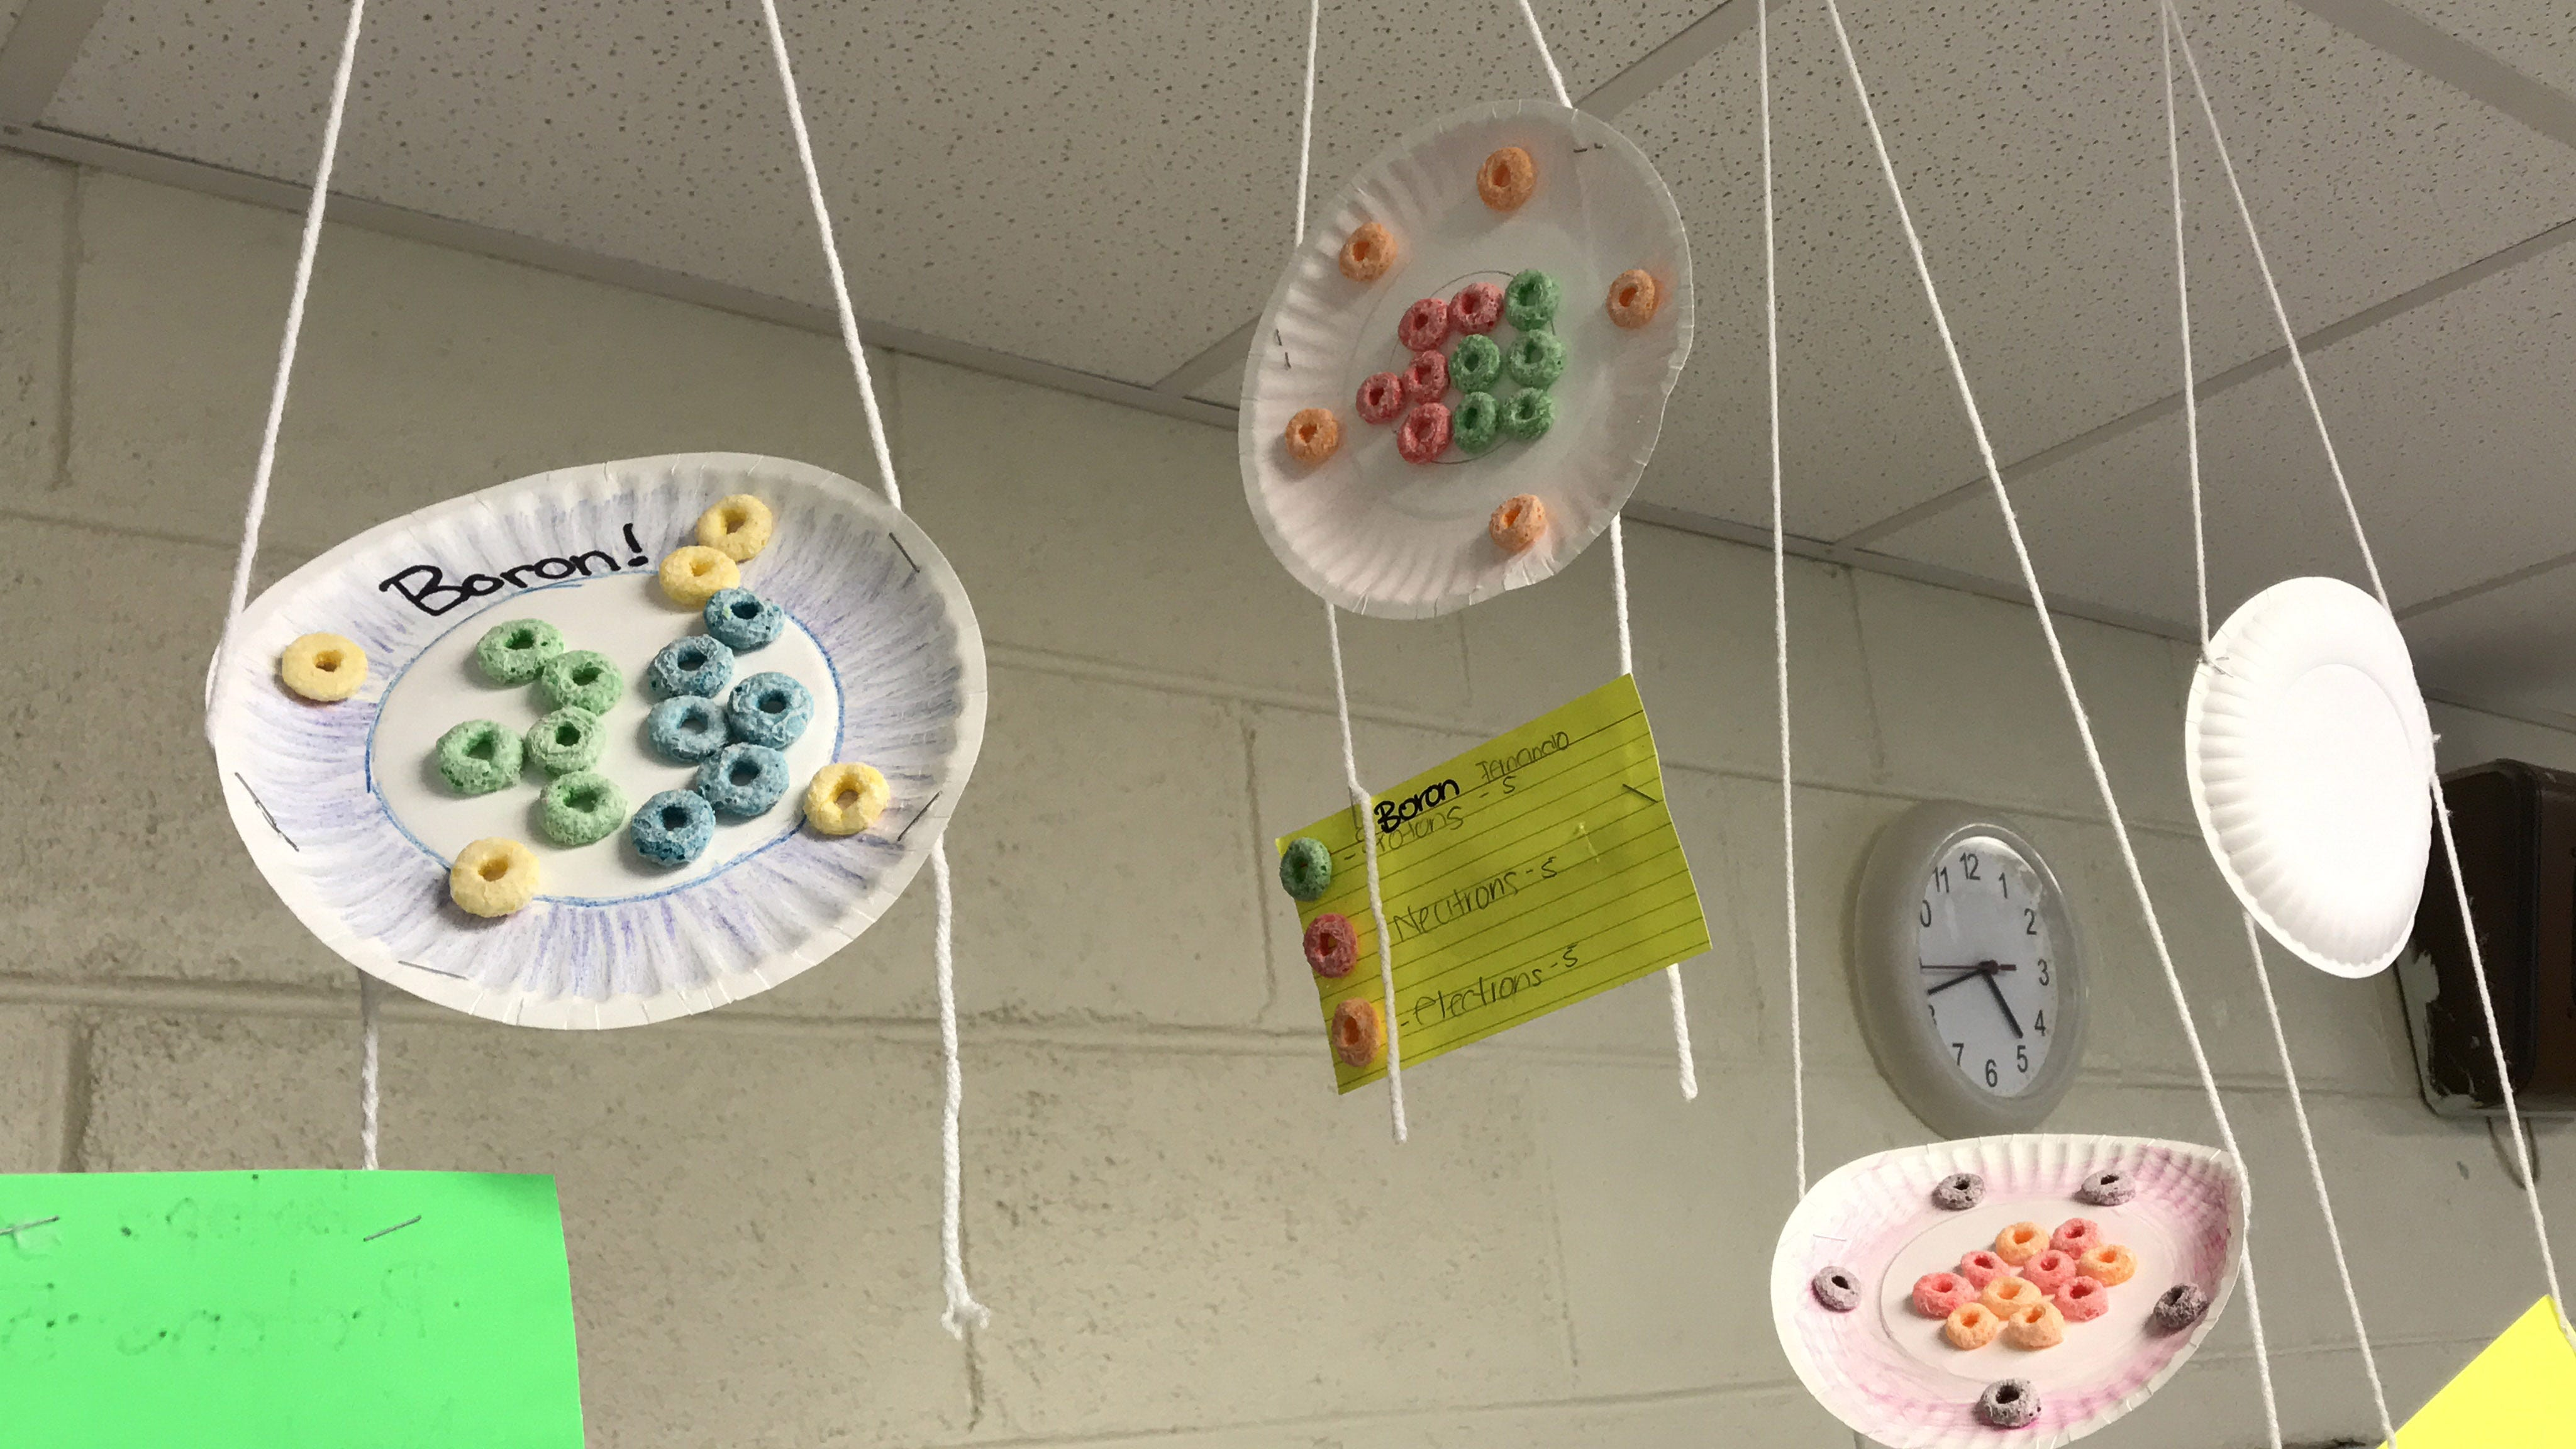 AP Chemistry student illustrations of Boron, a chemical element, hang in a classroom at Holmes County Central High School. Tuesday, April 9, 2019.